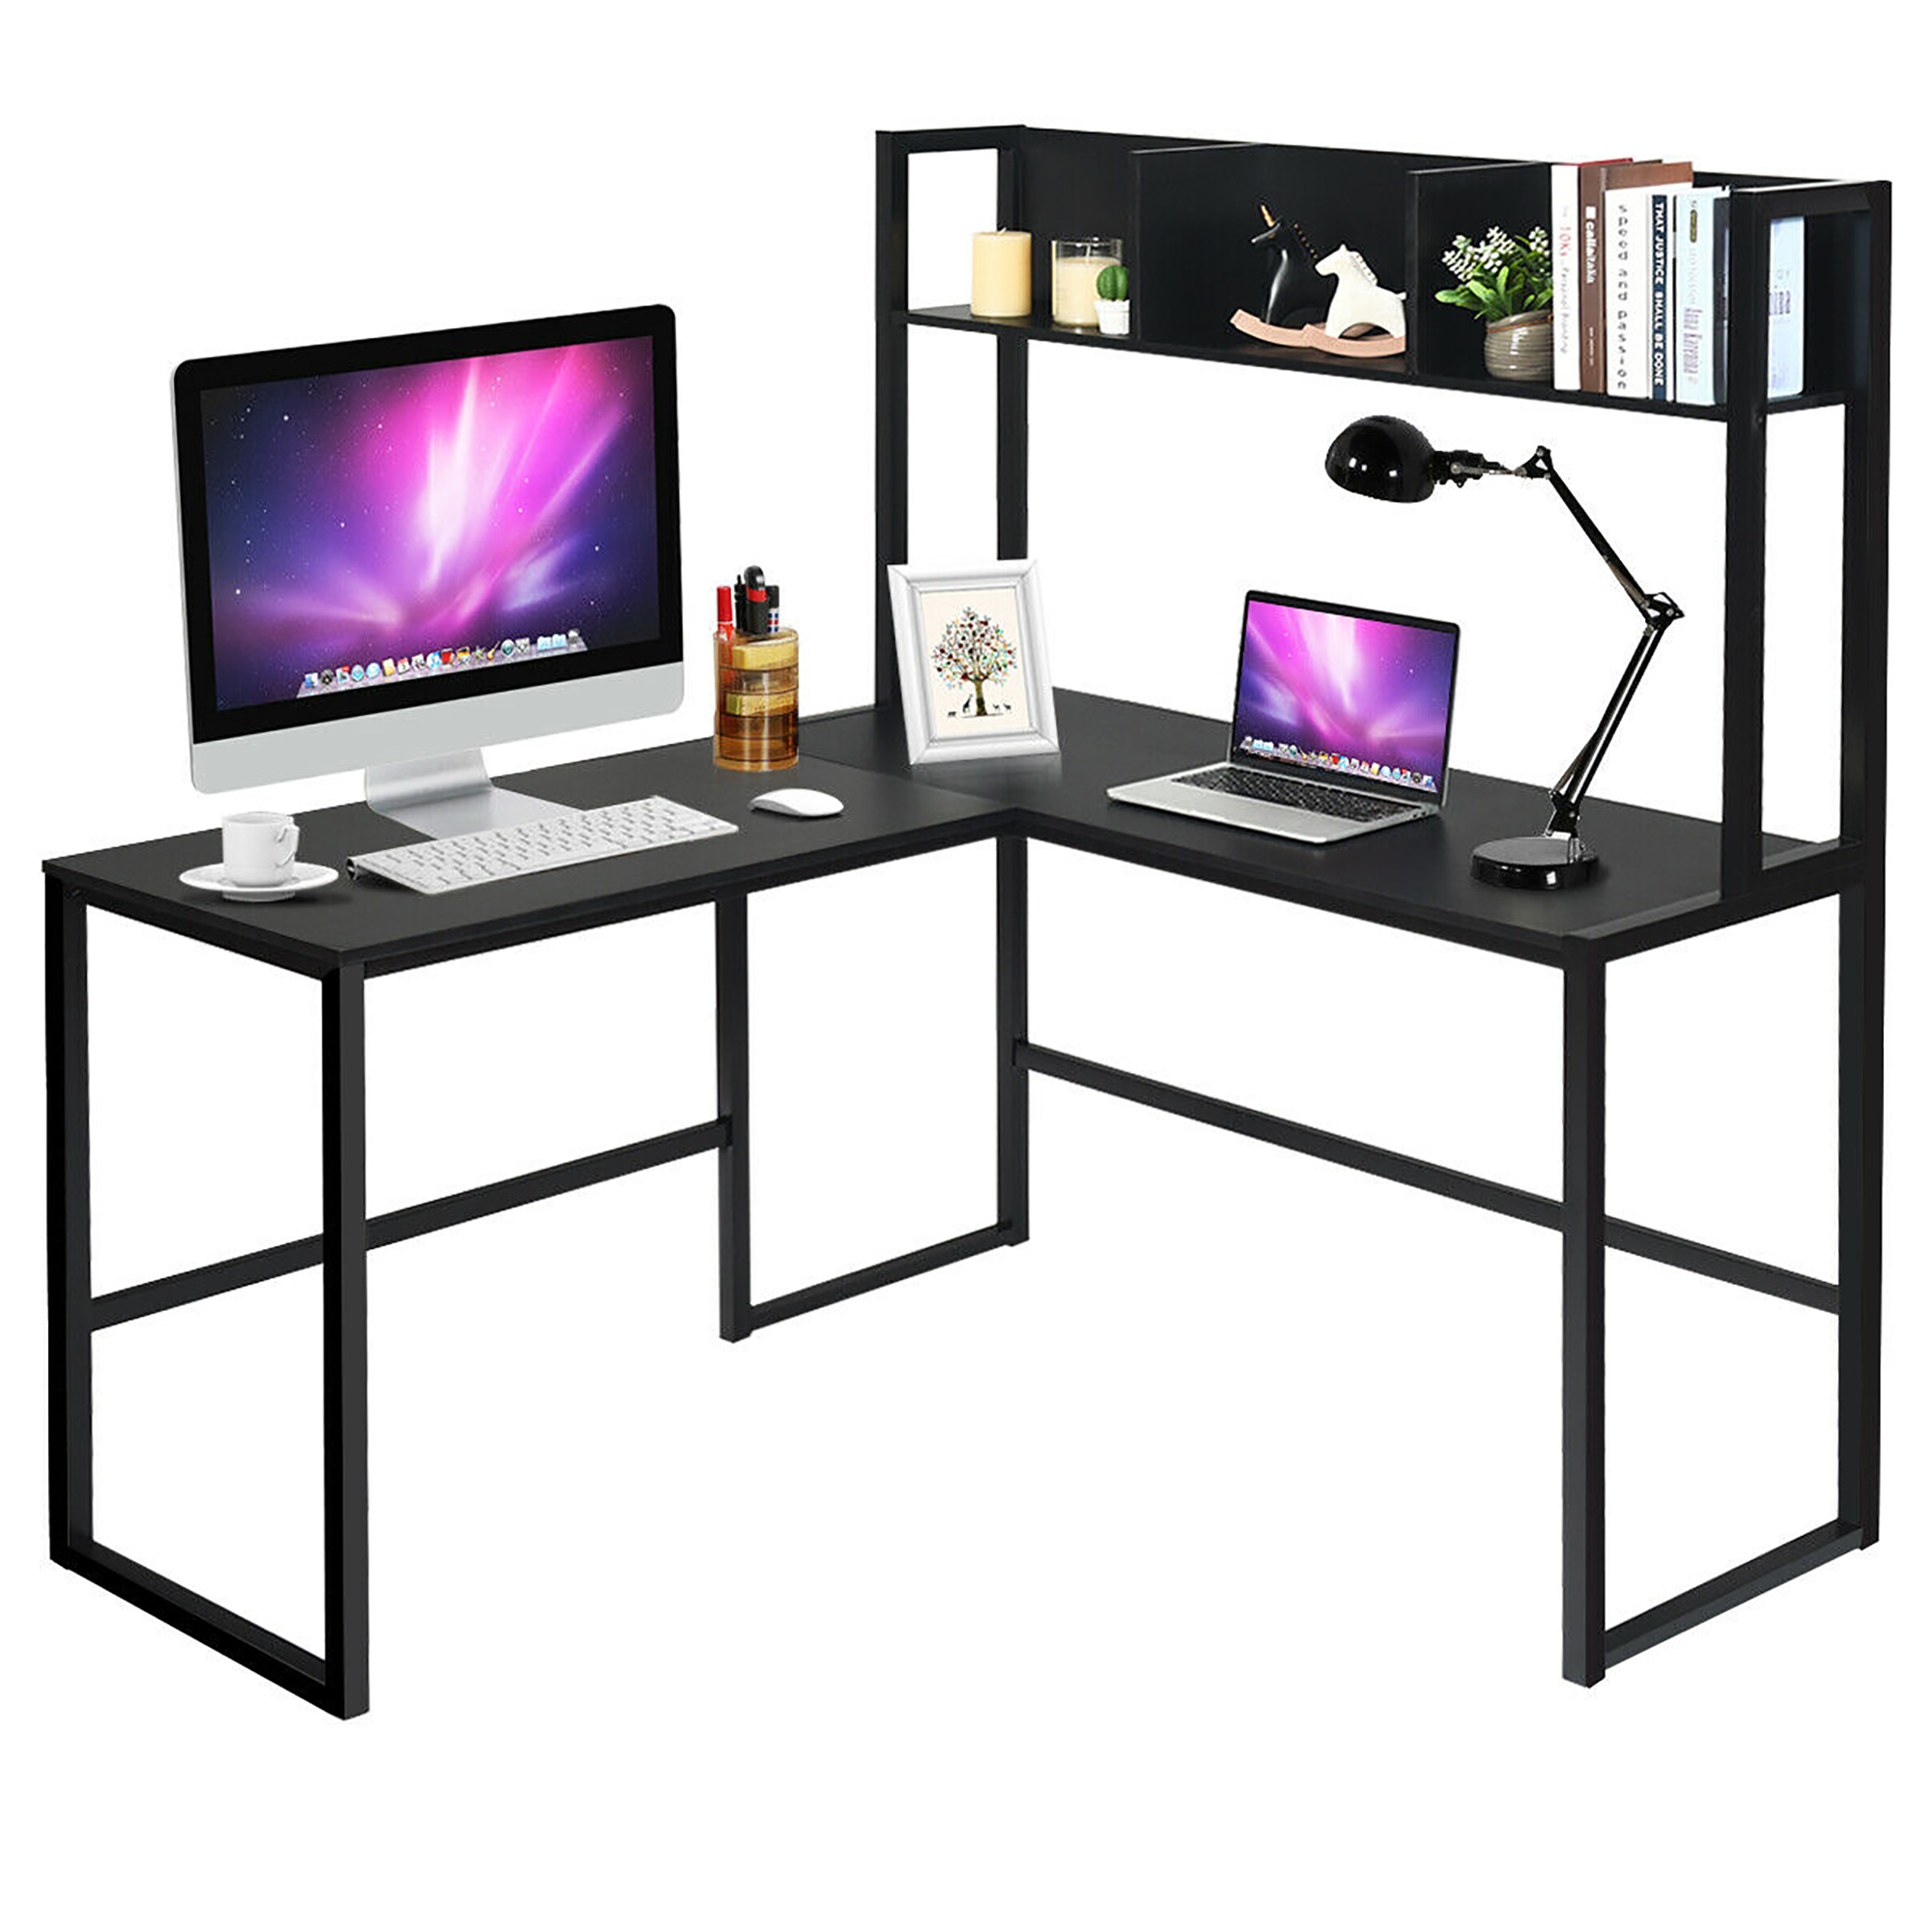 Costway 55 L Shaped Desk Corner Computer Desk W Hutch Black Walmart Canada